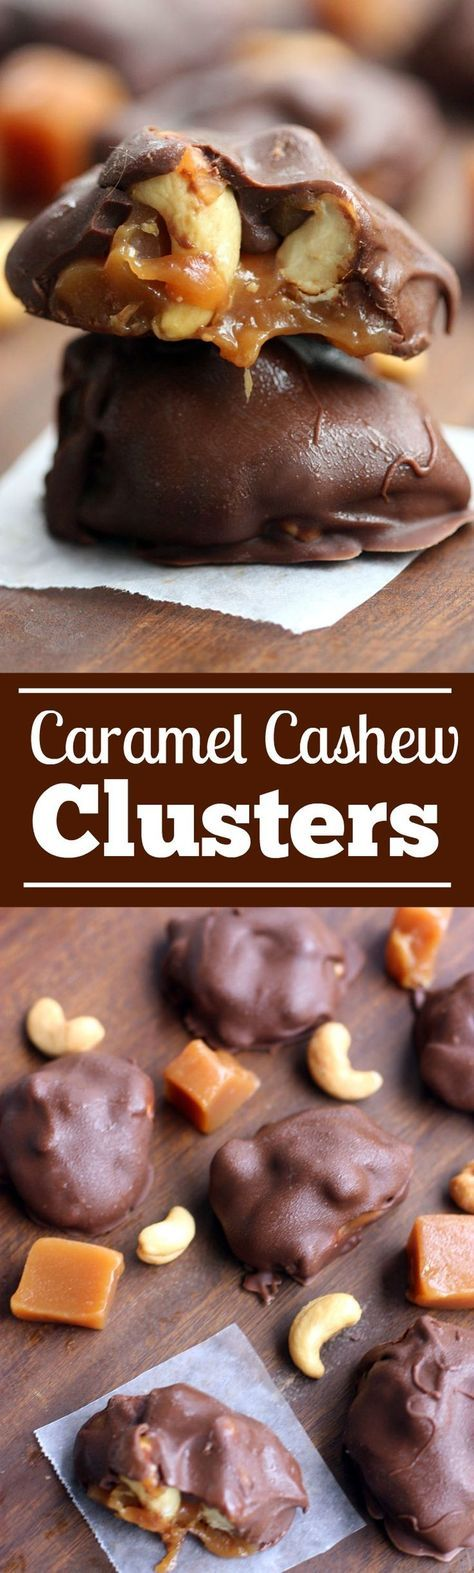 Caramel Cashew Clusters - only three ingredients - via My Recipe Magic